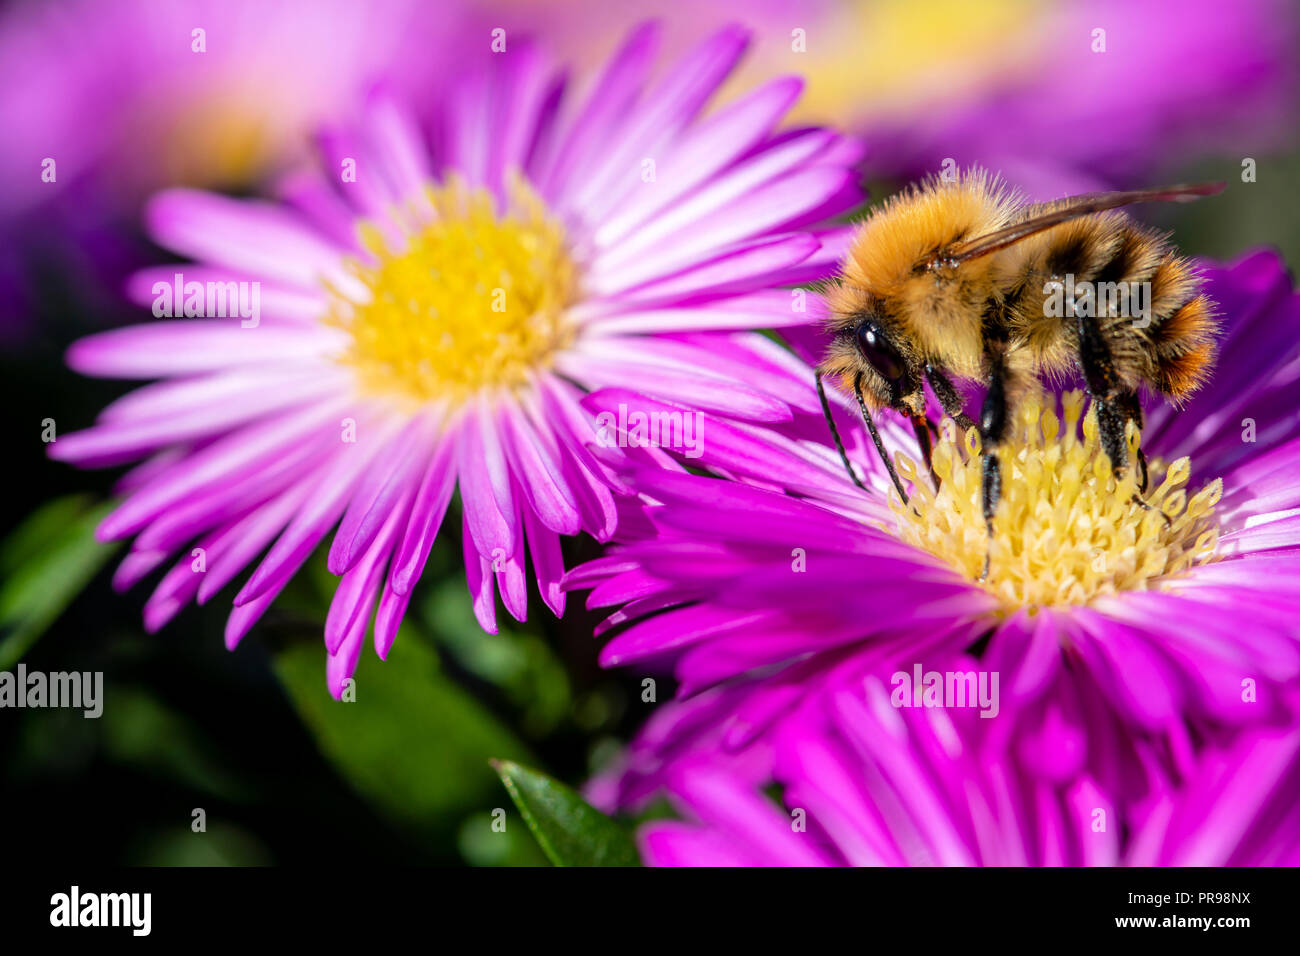 Pink Aster Flowers Stock Photos Pink Aster Flowers Stock Images